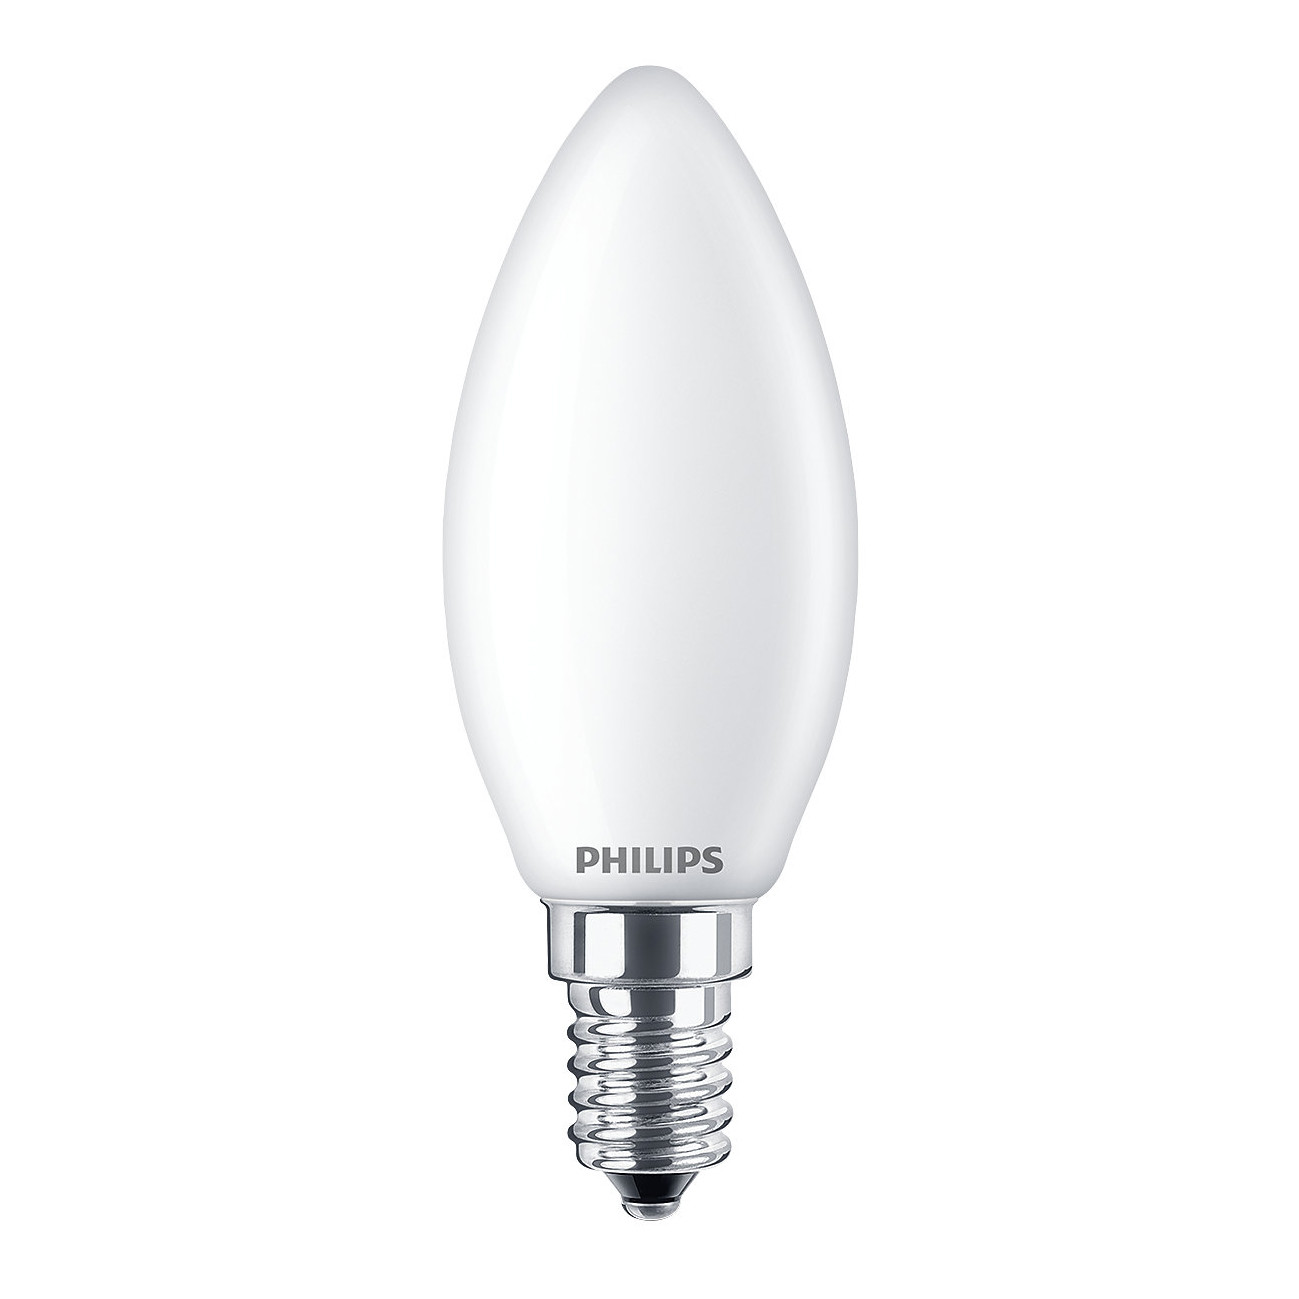 philips led lampen philips led lampen von toom ansehen philips e27 gloeilamp 9w flame mijn led. Black Bedroom Furniture Sets. Home Design Ideas